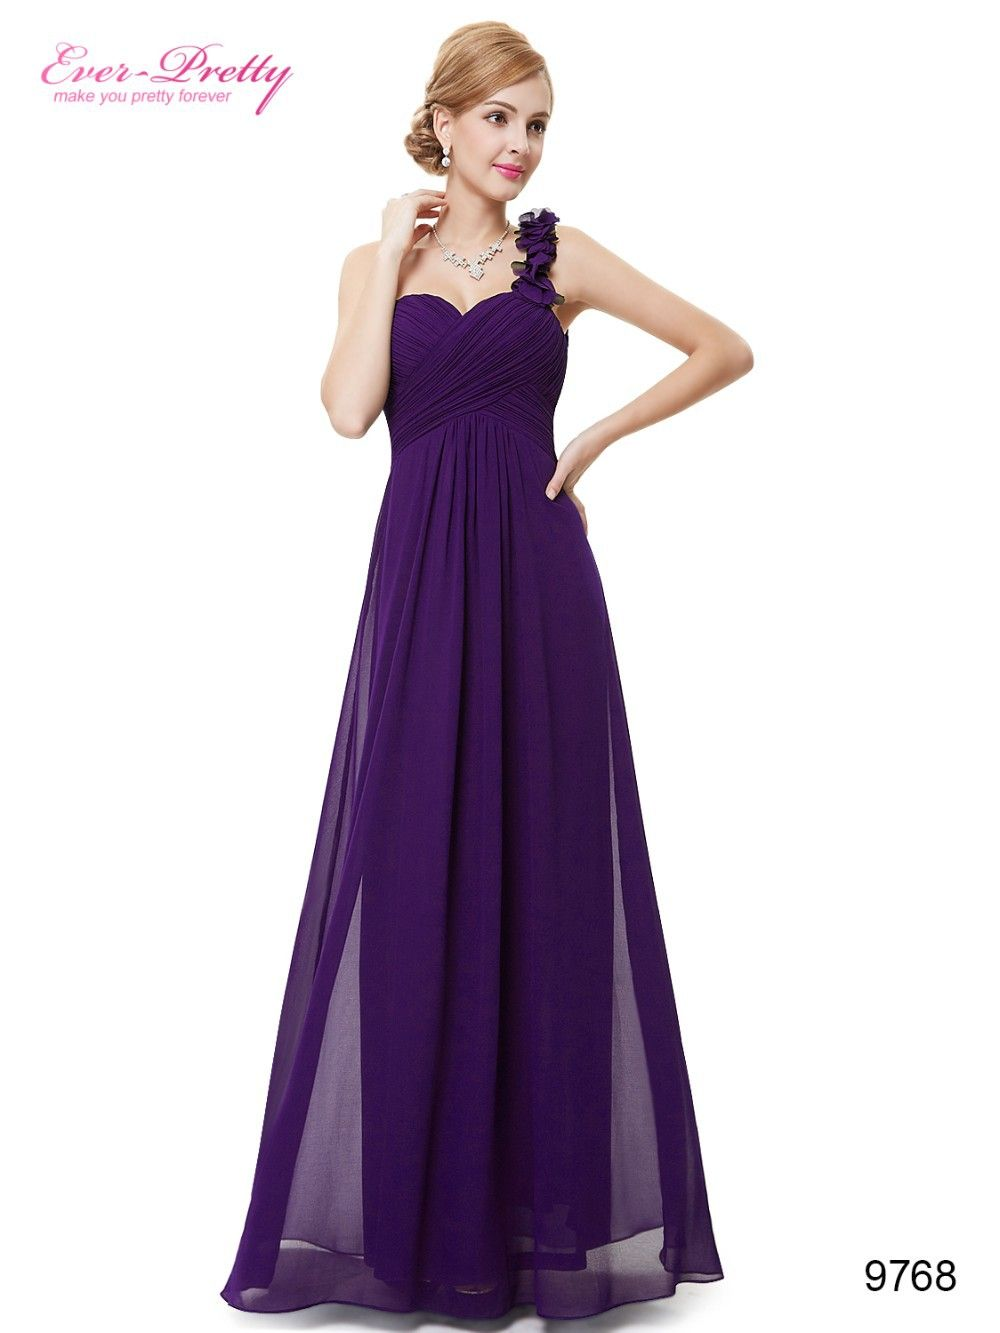 Cheap dress pumps buy quality dress next directly from china dress